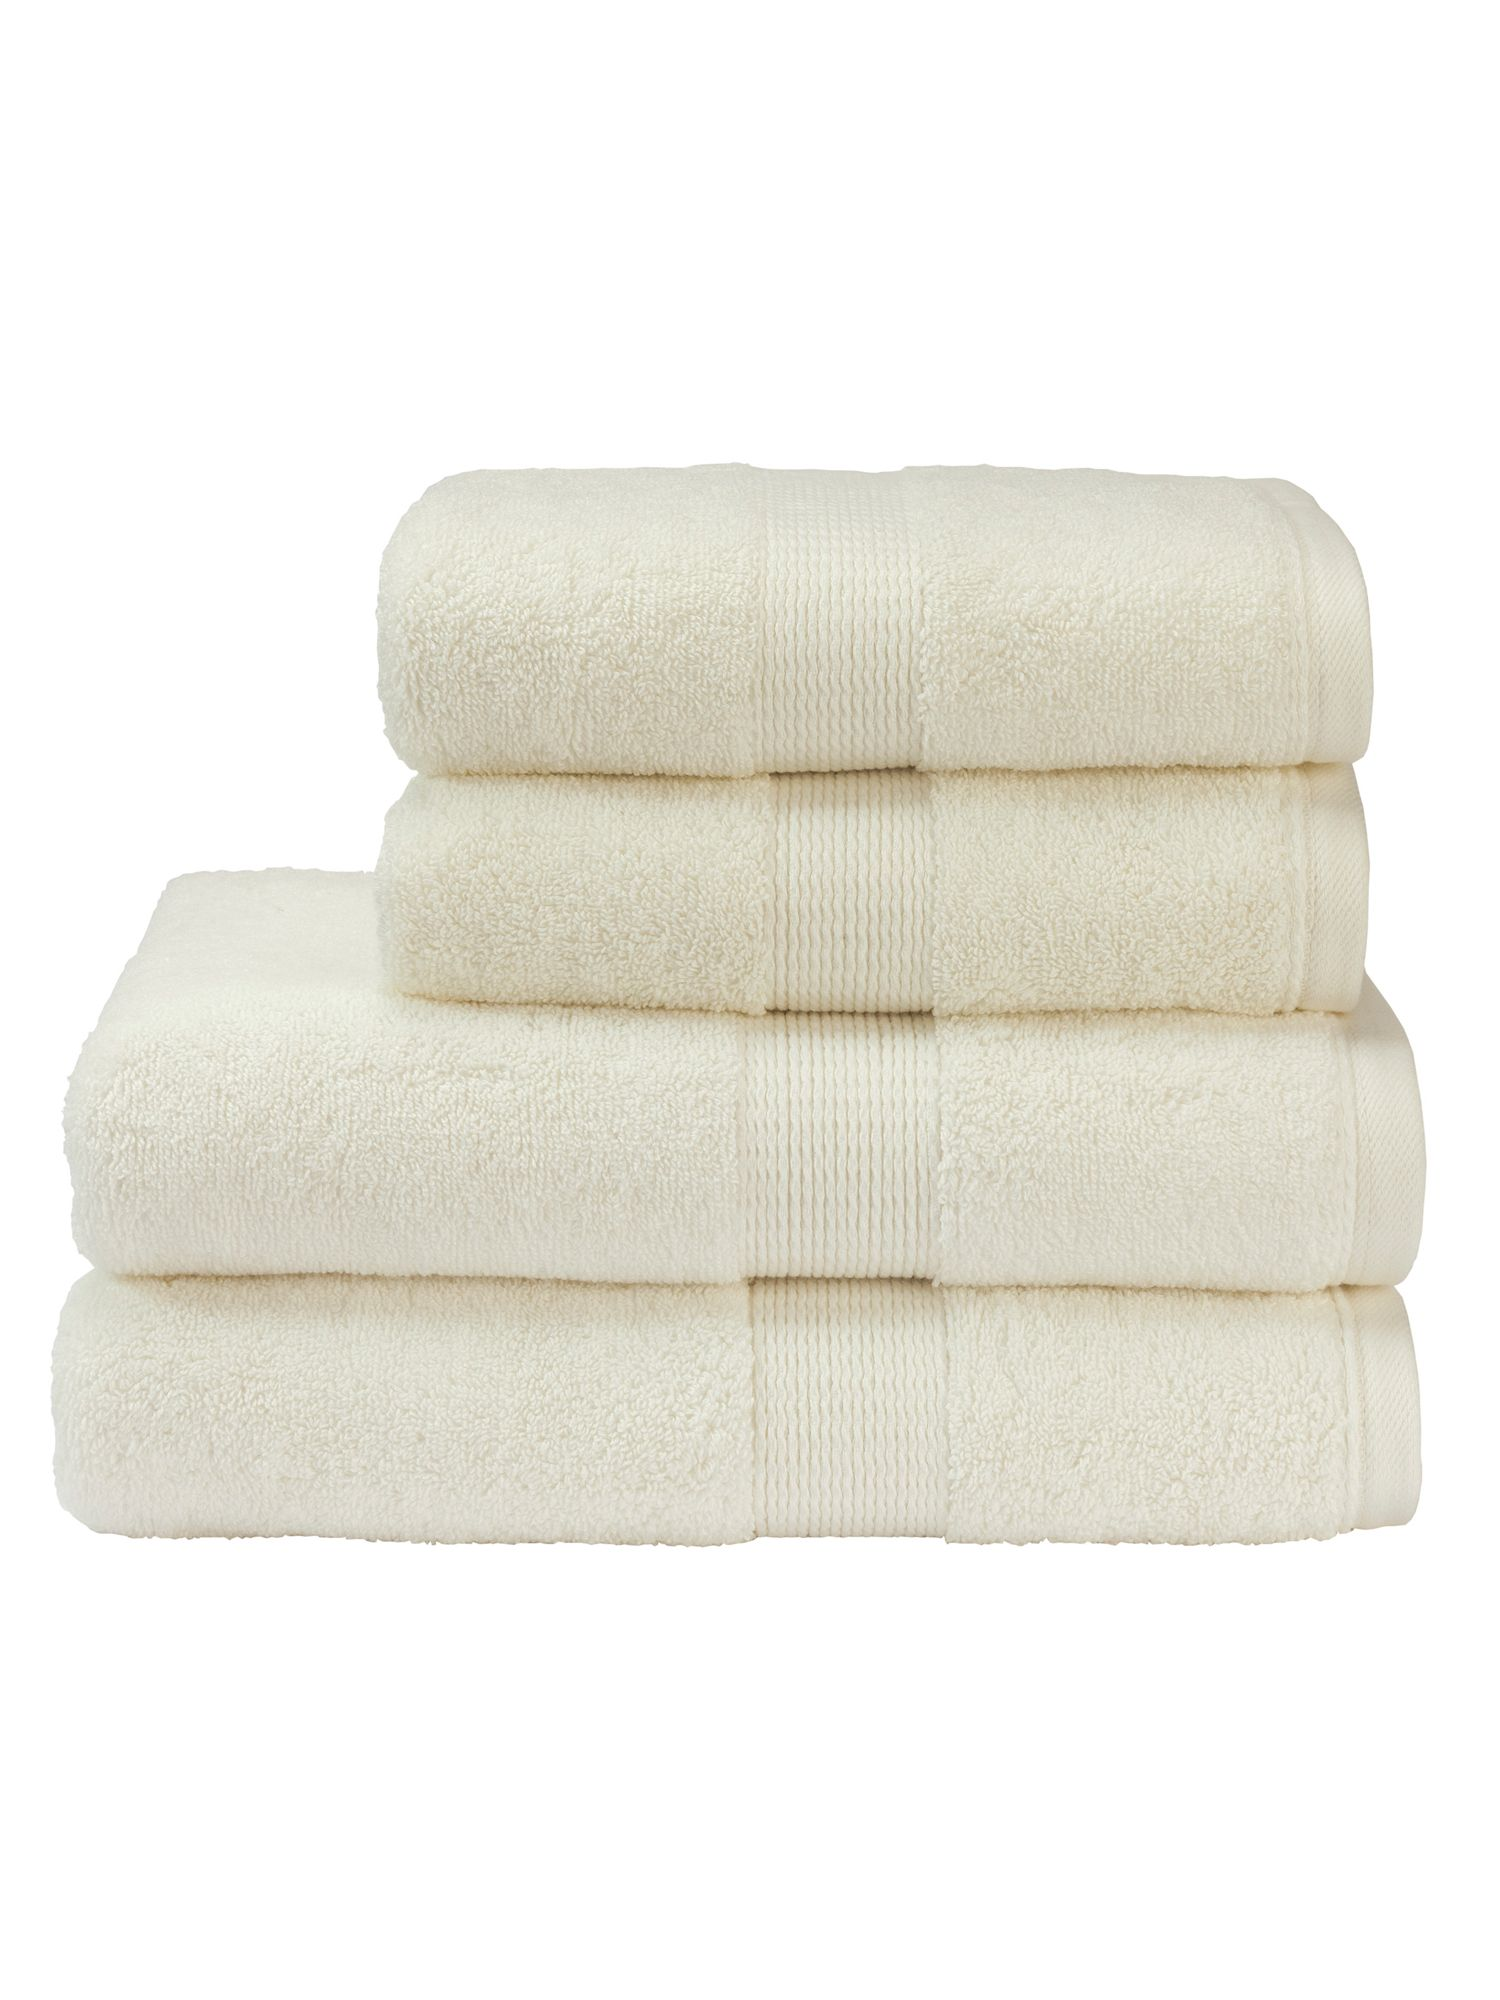 Toledo towels in Cream